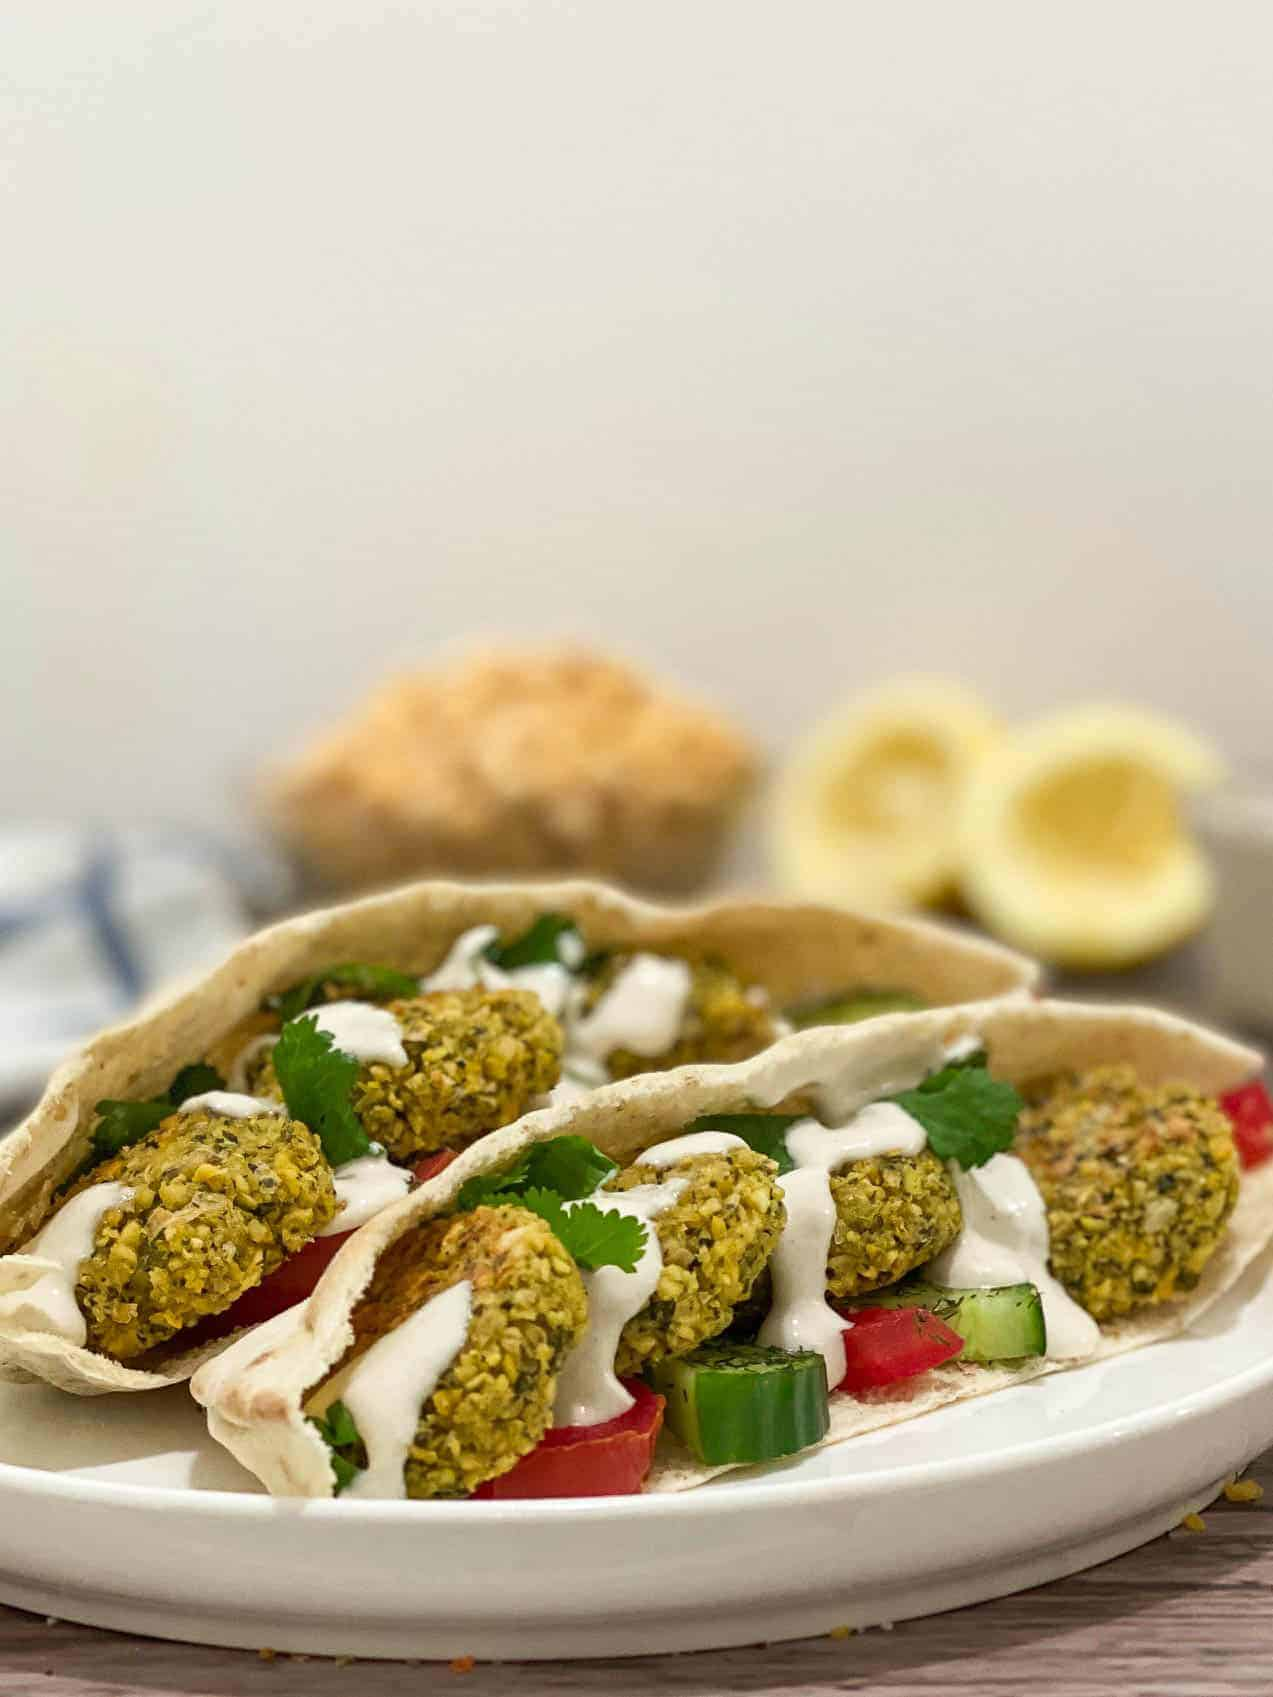 pita stuffed with falafel, tomato, cucumber and tahini